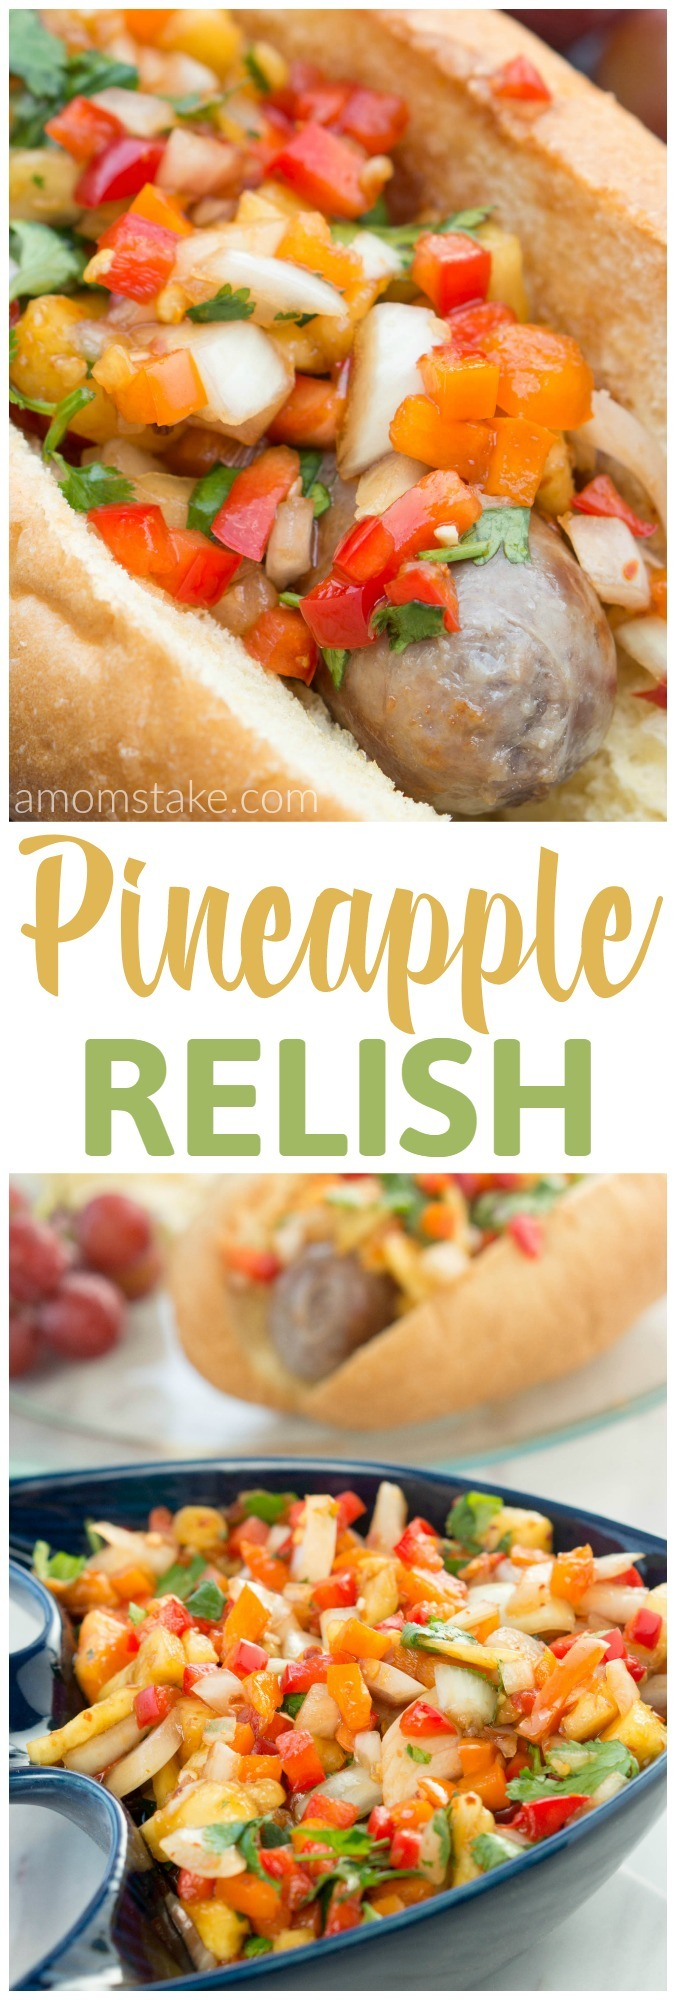 This pineapple relish will be the perfect garnish for all your favorite recipes! Serve it on top of brats, hamburgers, chicken, steak, or fish! Yummy side dish to add to your picnic or dinner recipes!